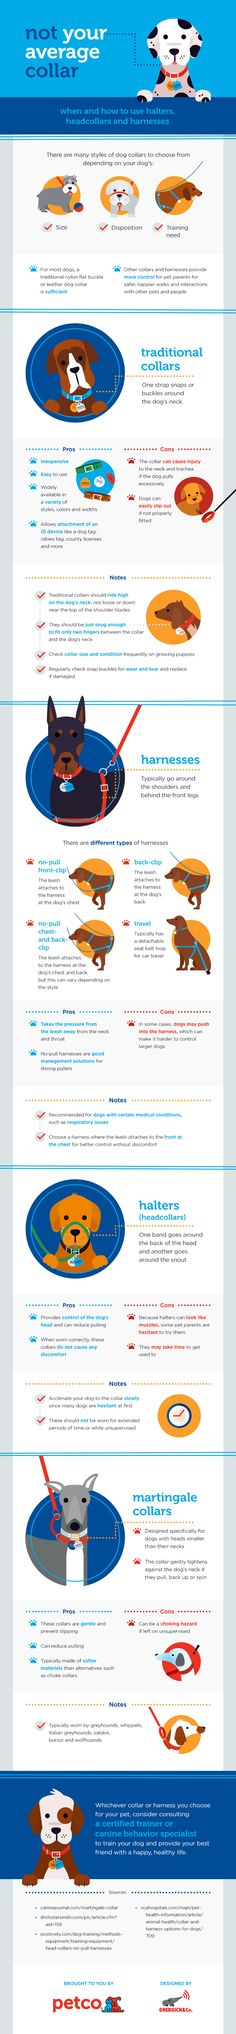 There are many styles of dog collars and harnesses to choose from depending on your dog's size, training needs and disposition. Use this guide to help you determine the right collar or harness for your pet.   Shop Petco.com for a wide assortment of collars and harnesses.